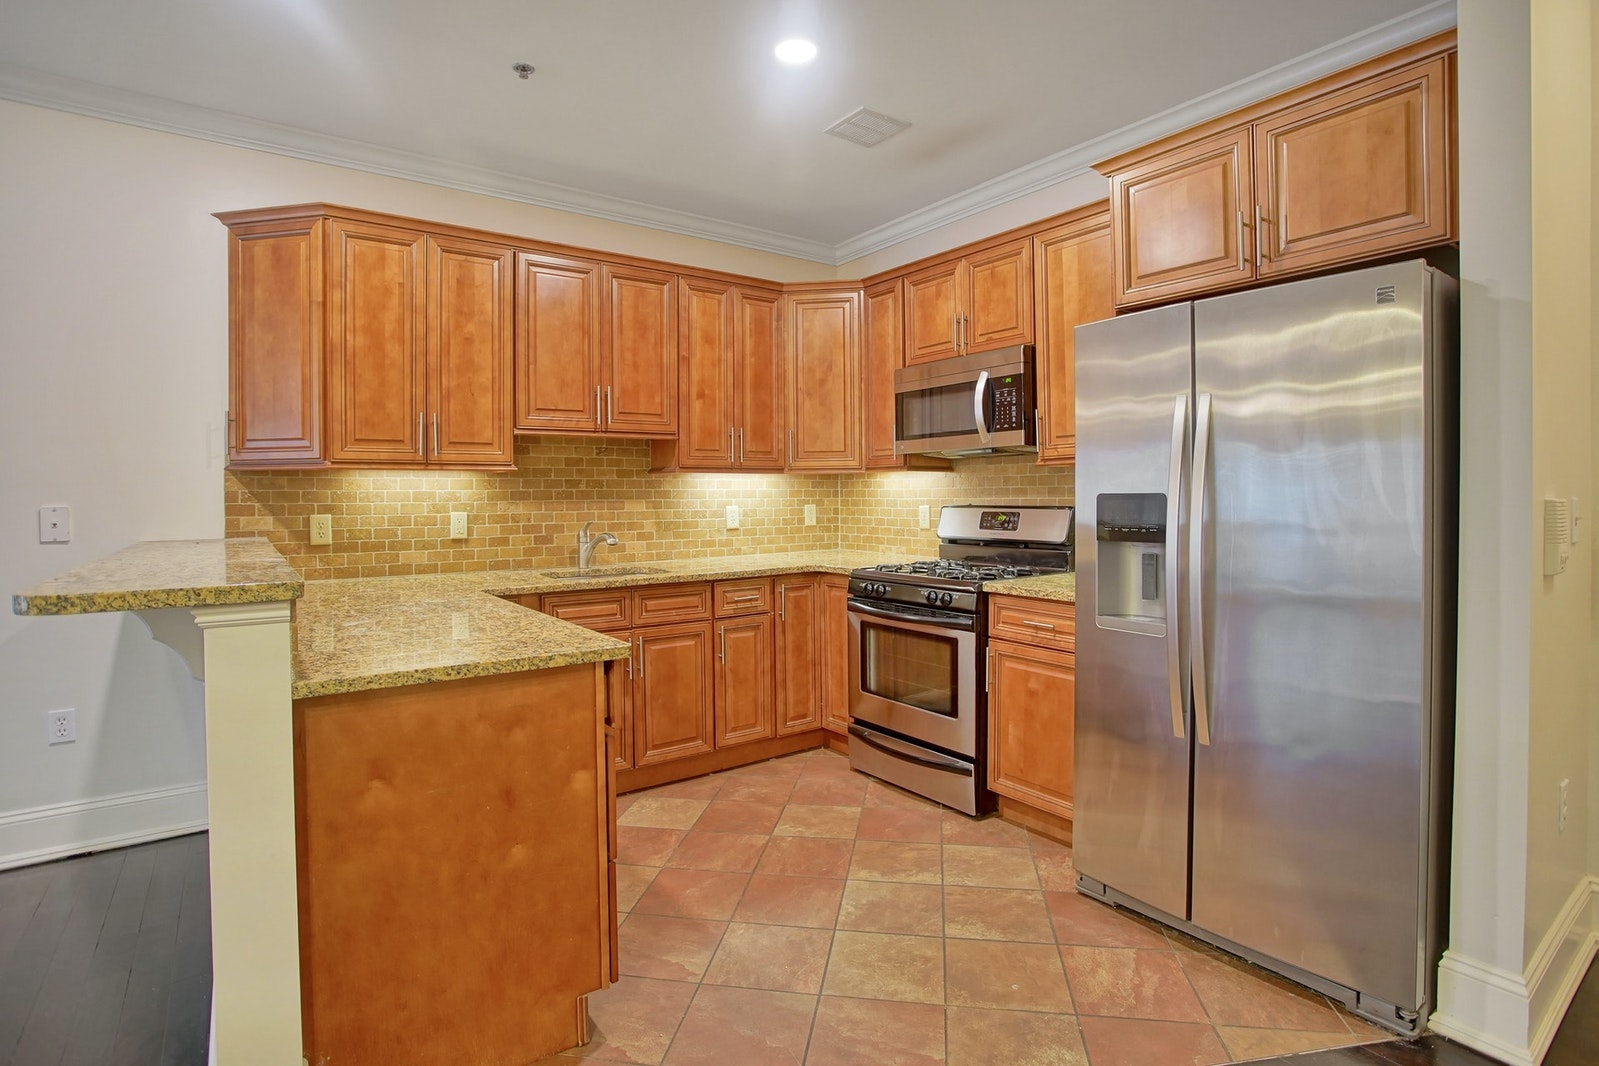 369 5th Street 10, Jersey City Downtown, New Jersey, 07302, $675,000, Property For Sale, Halstead Real Estate, Photo 5